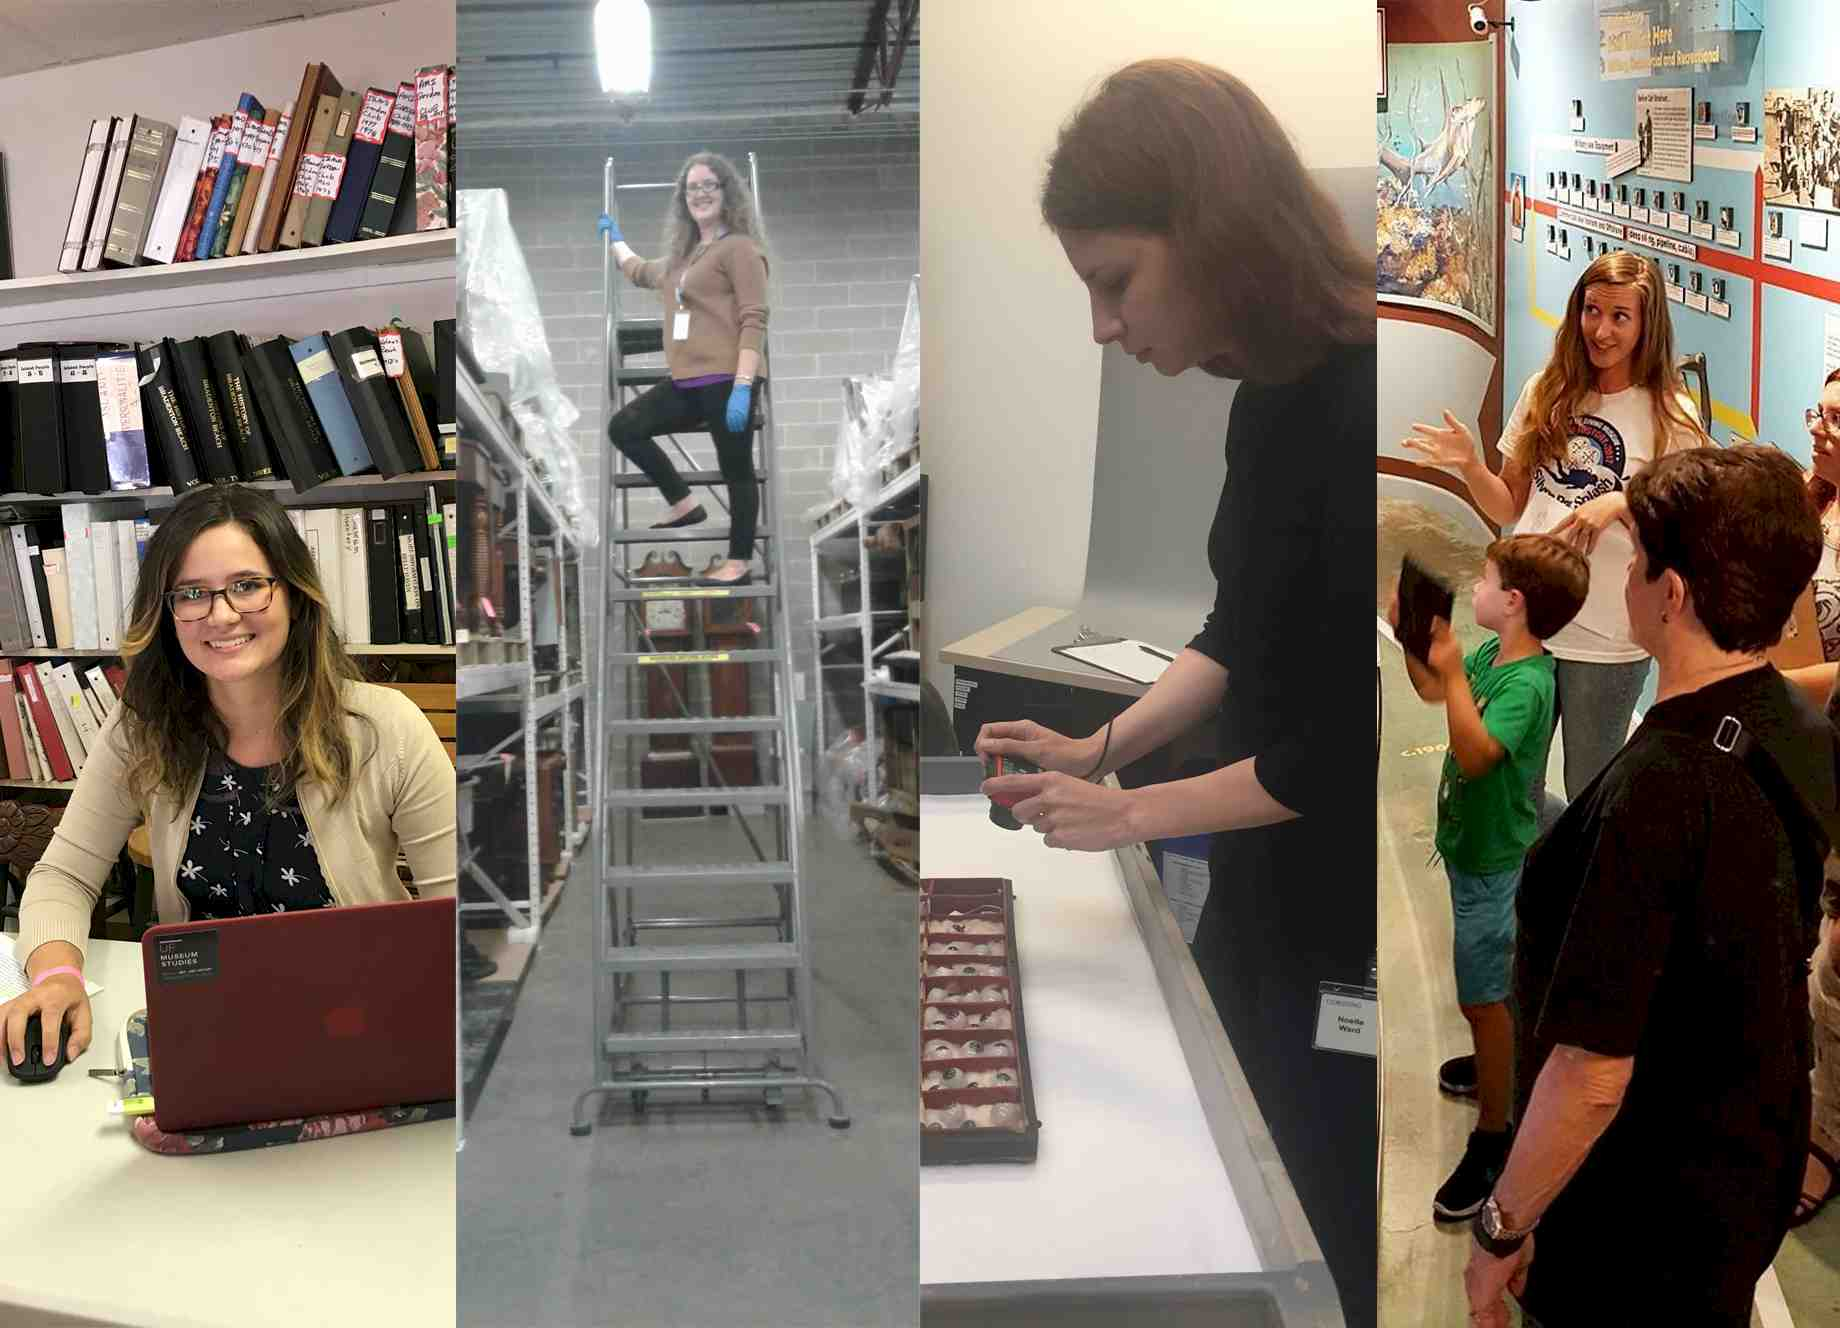 Uf museum studies students continue their hard work in the summer kaitlyn hof mahoney at kentucky historical society noelle ward at corning museum of glass lynea wilson at history of diving museum xflitez Gallery